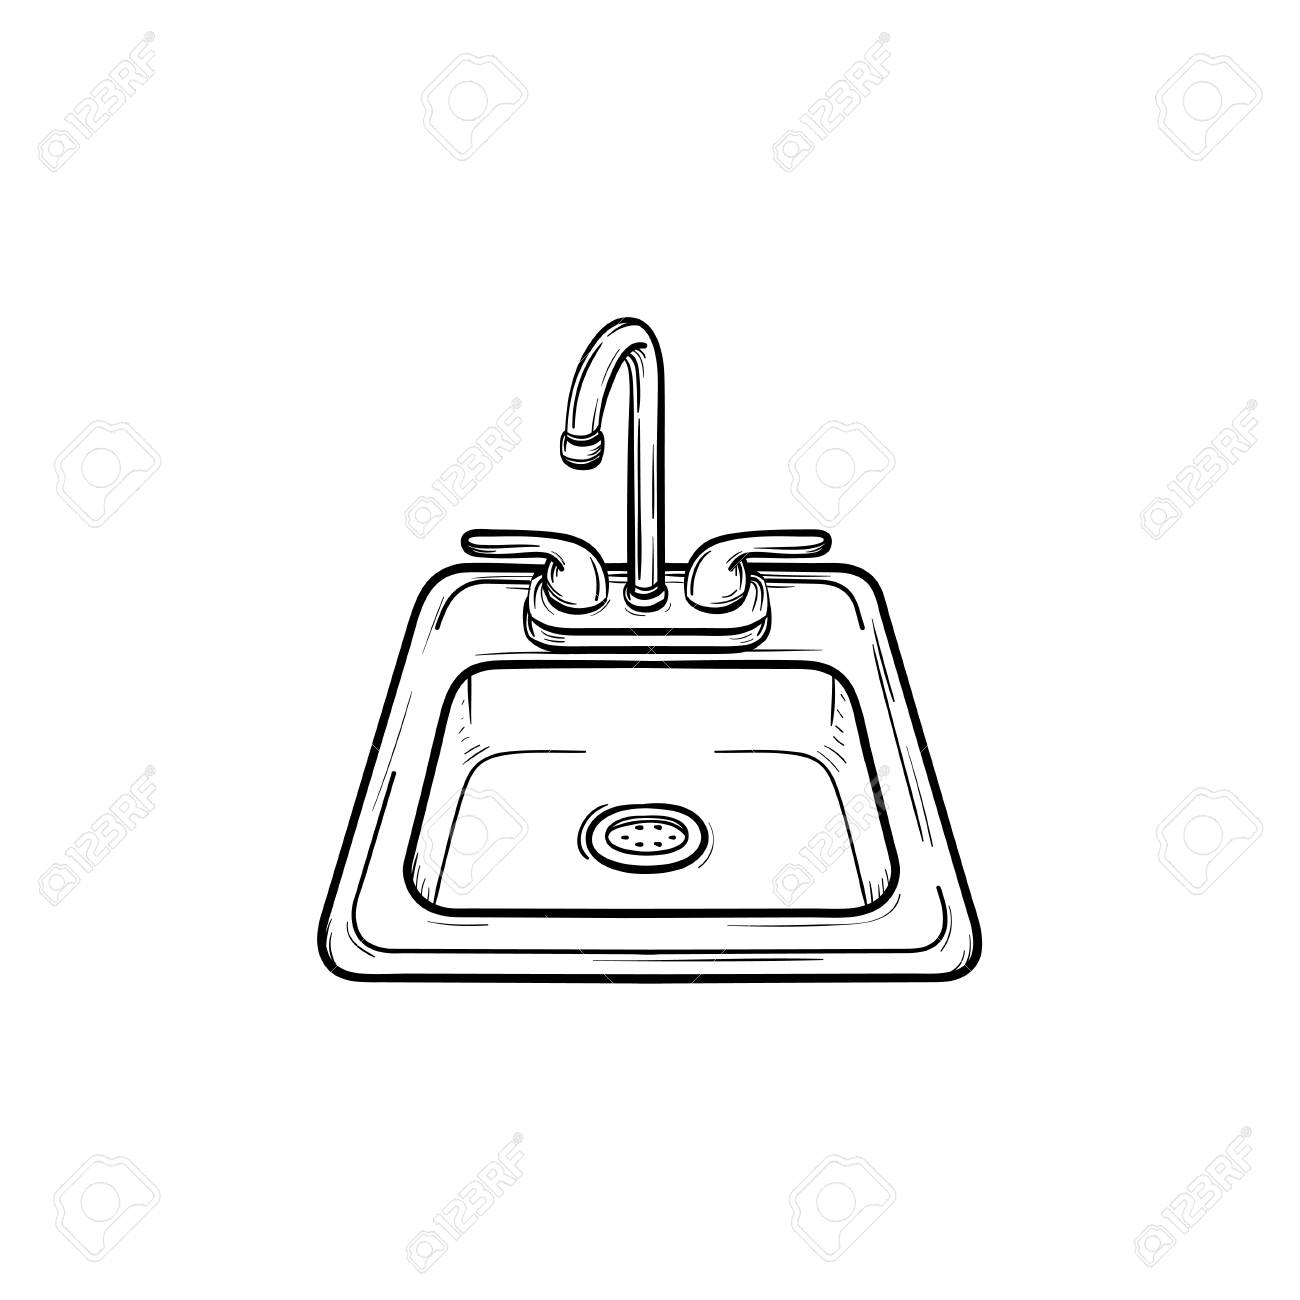 Toilet Sink Hand Drawn Outline Doodle Icon Vector Sketch Illustration For Print Web